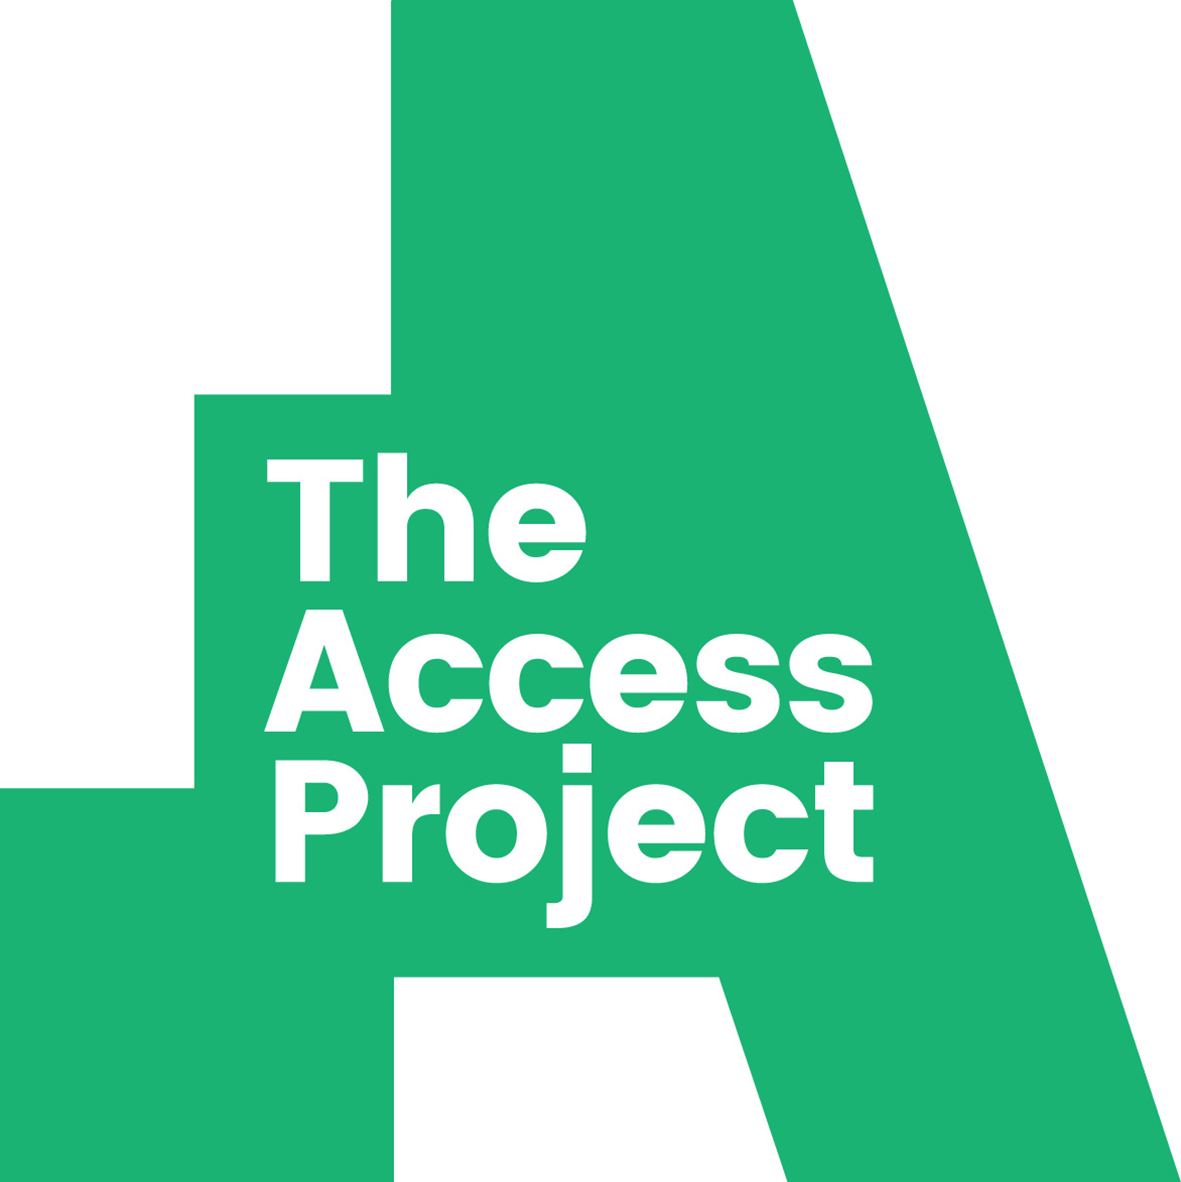 The Access Project